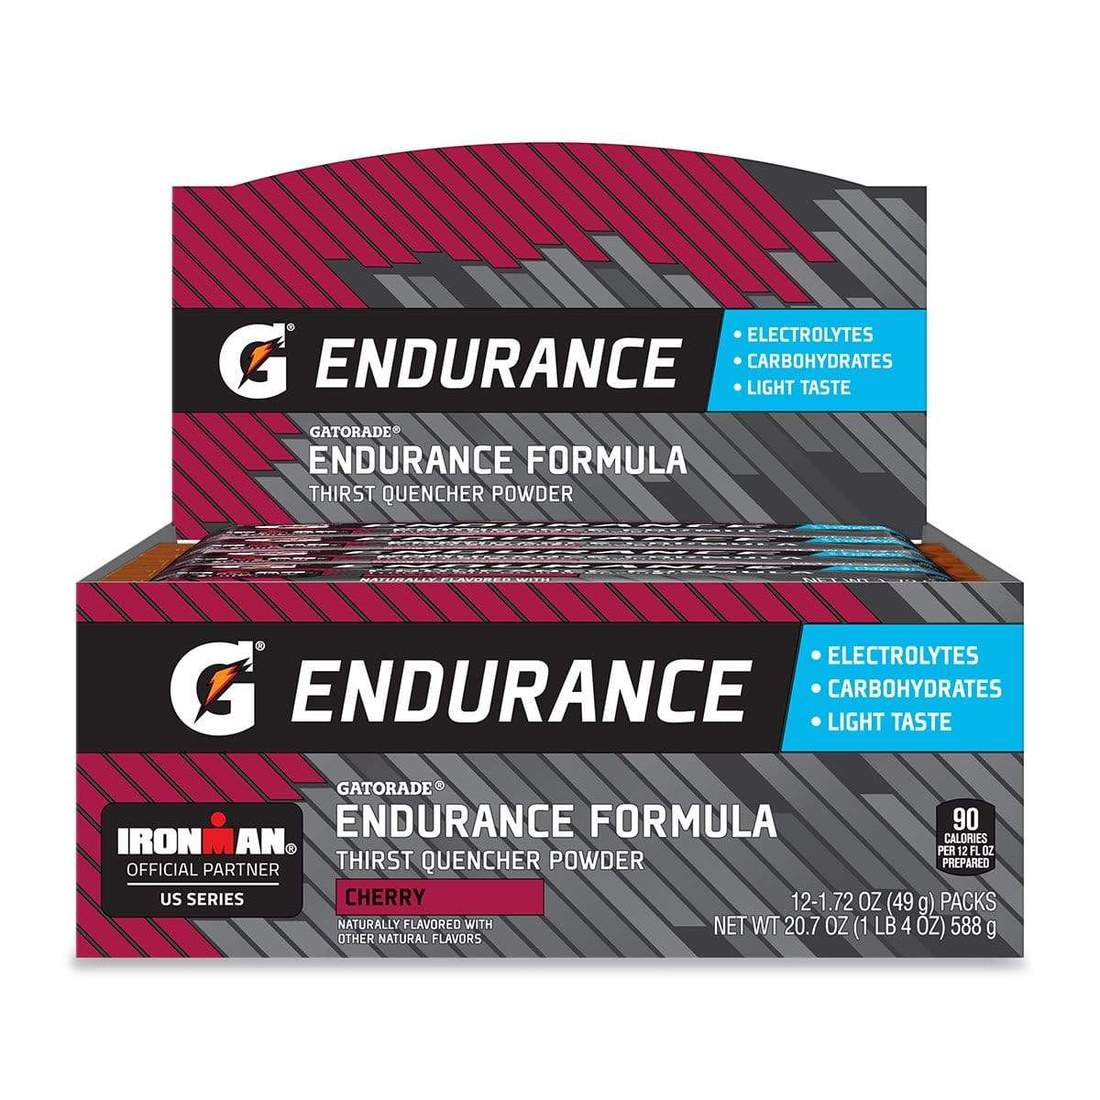 Gatorade Endurance Drink Mix Box